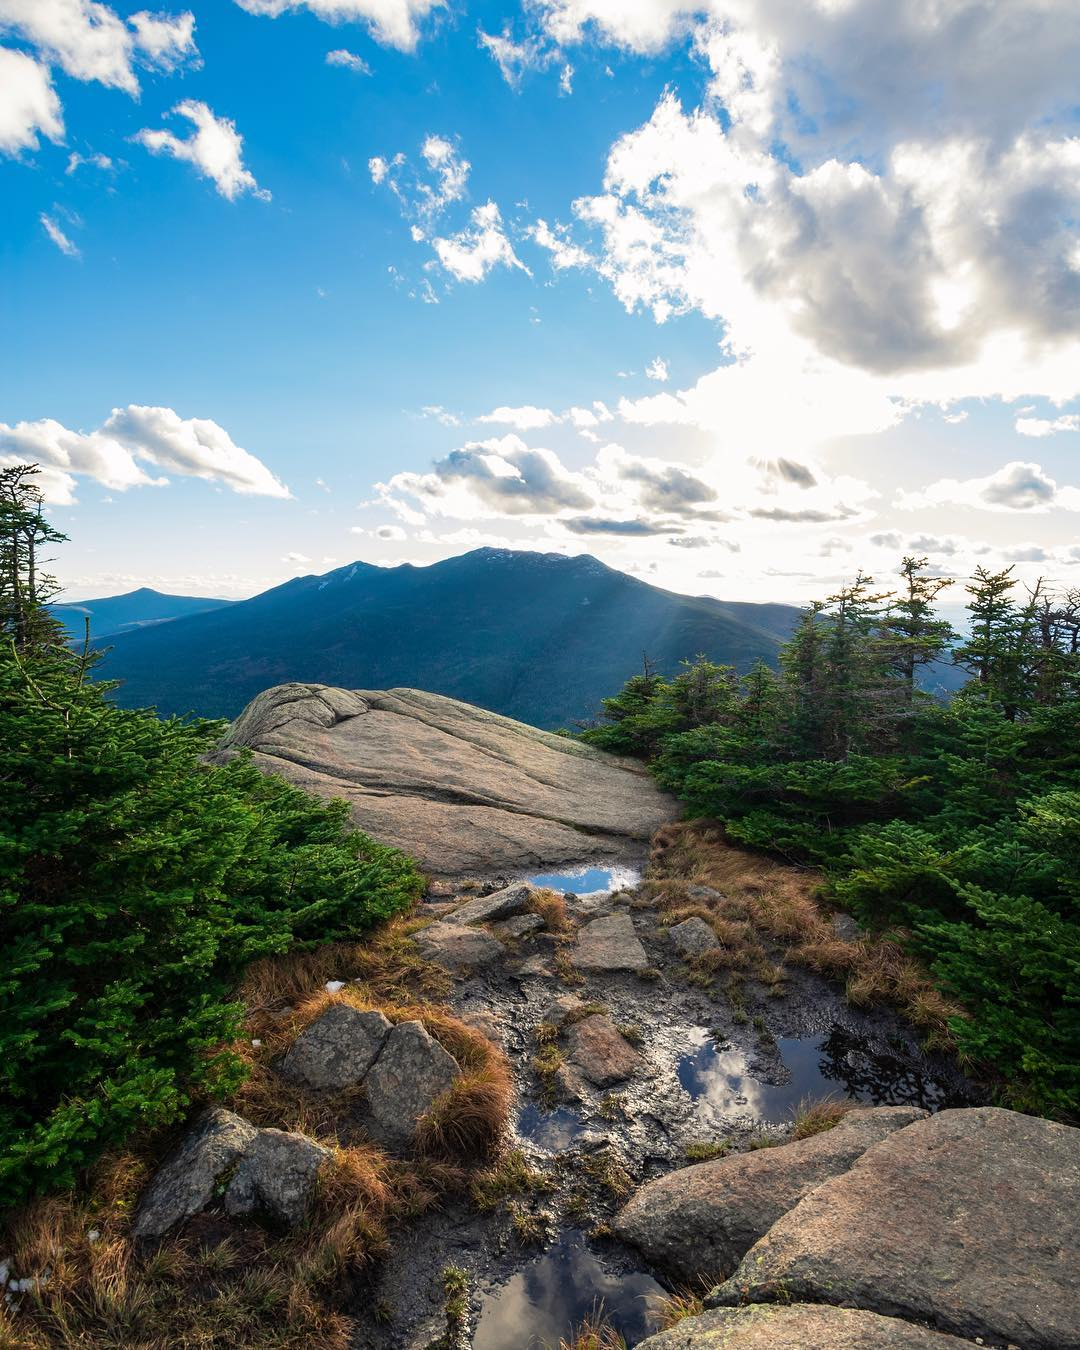 Mount Garfield in New Hampshire